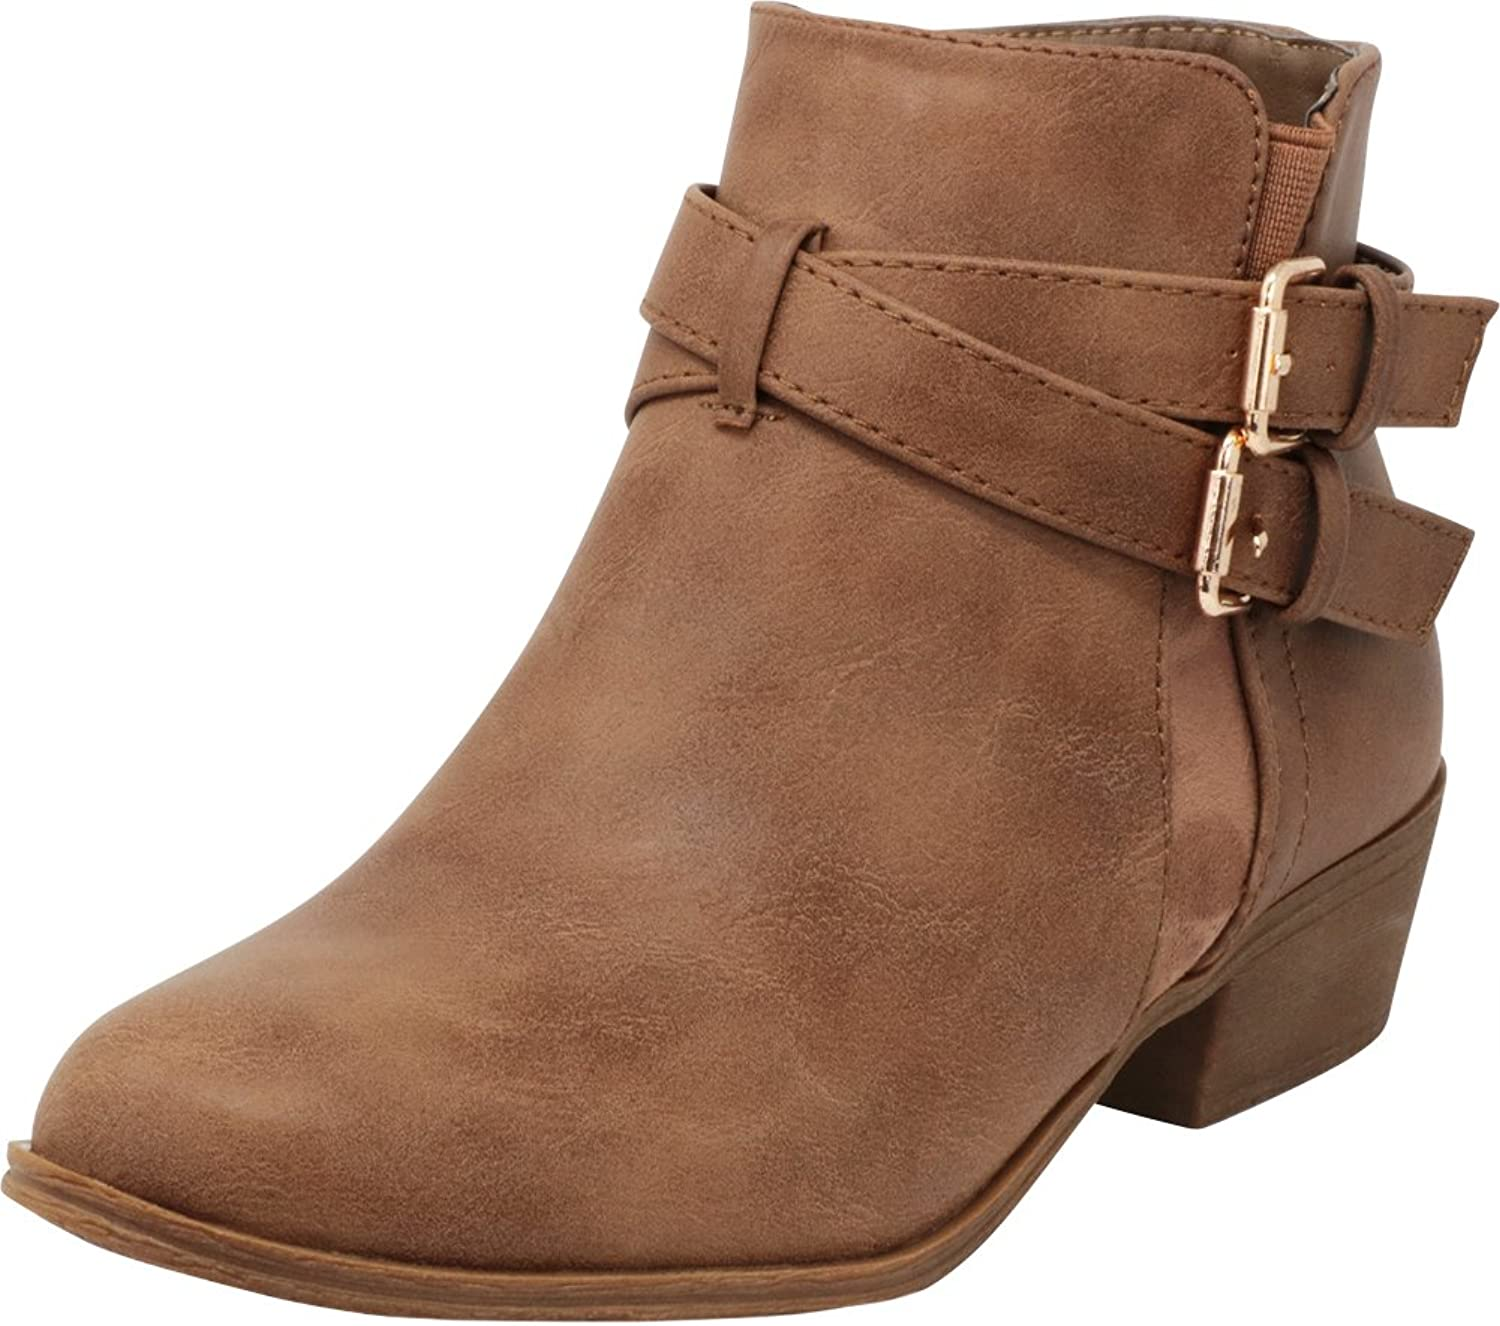 Cambridge Select Women's Closed Round Toe Western Buckled Crisscross Strap Stacked Chunky Block Heel Ankle Bootie